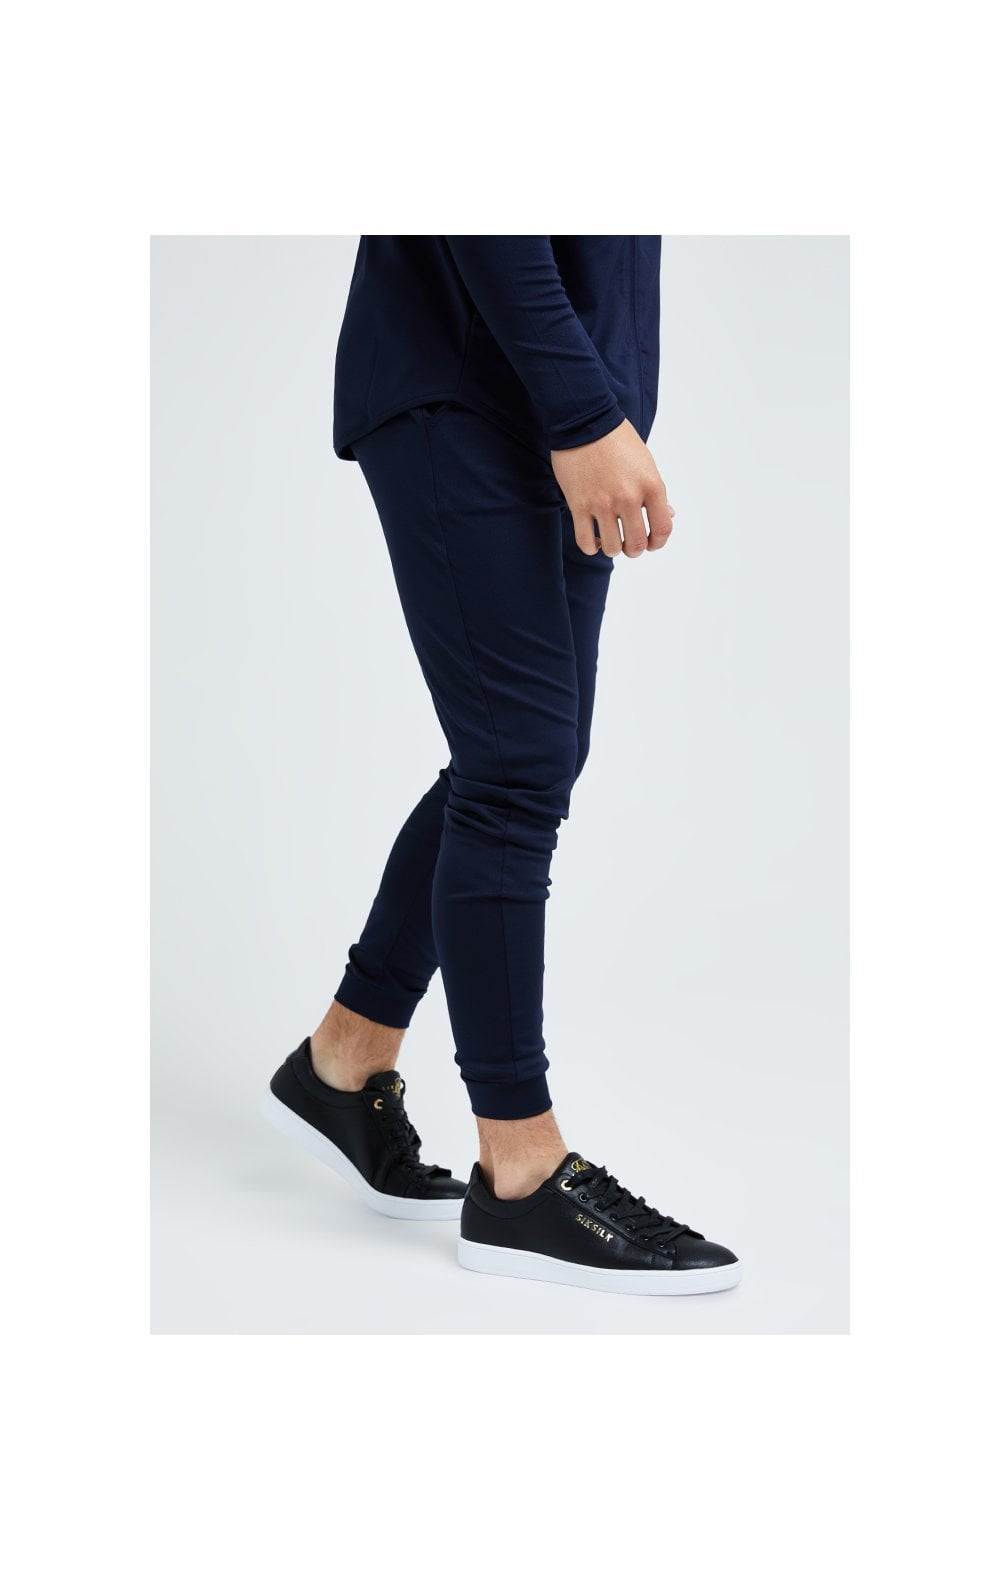 Illusive London Core Fitted Joggers - Navy (4)